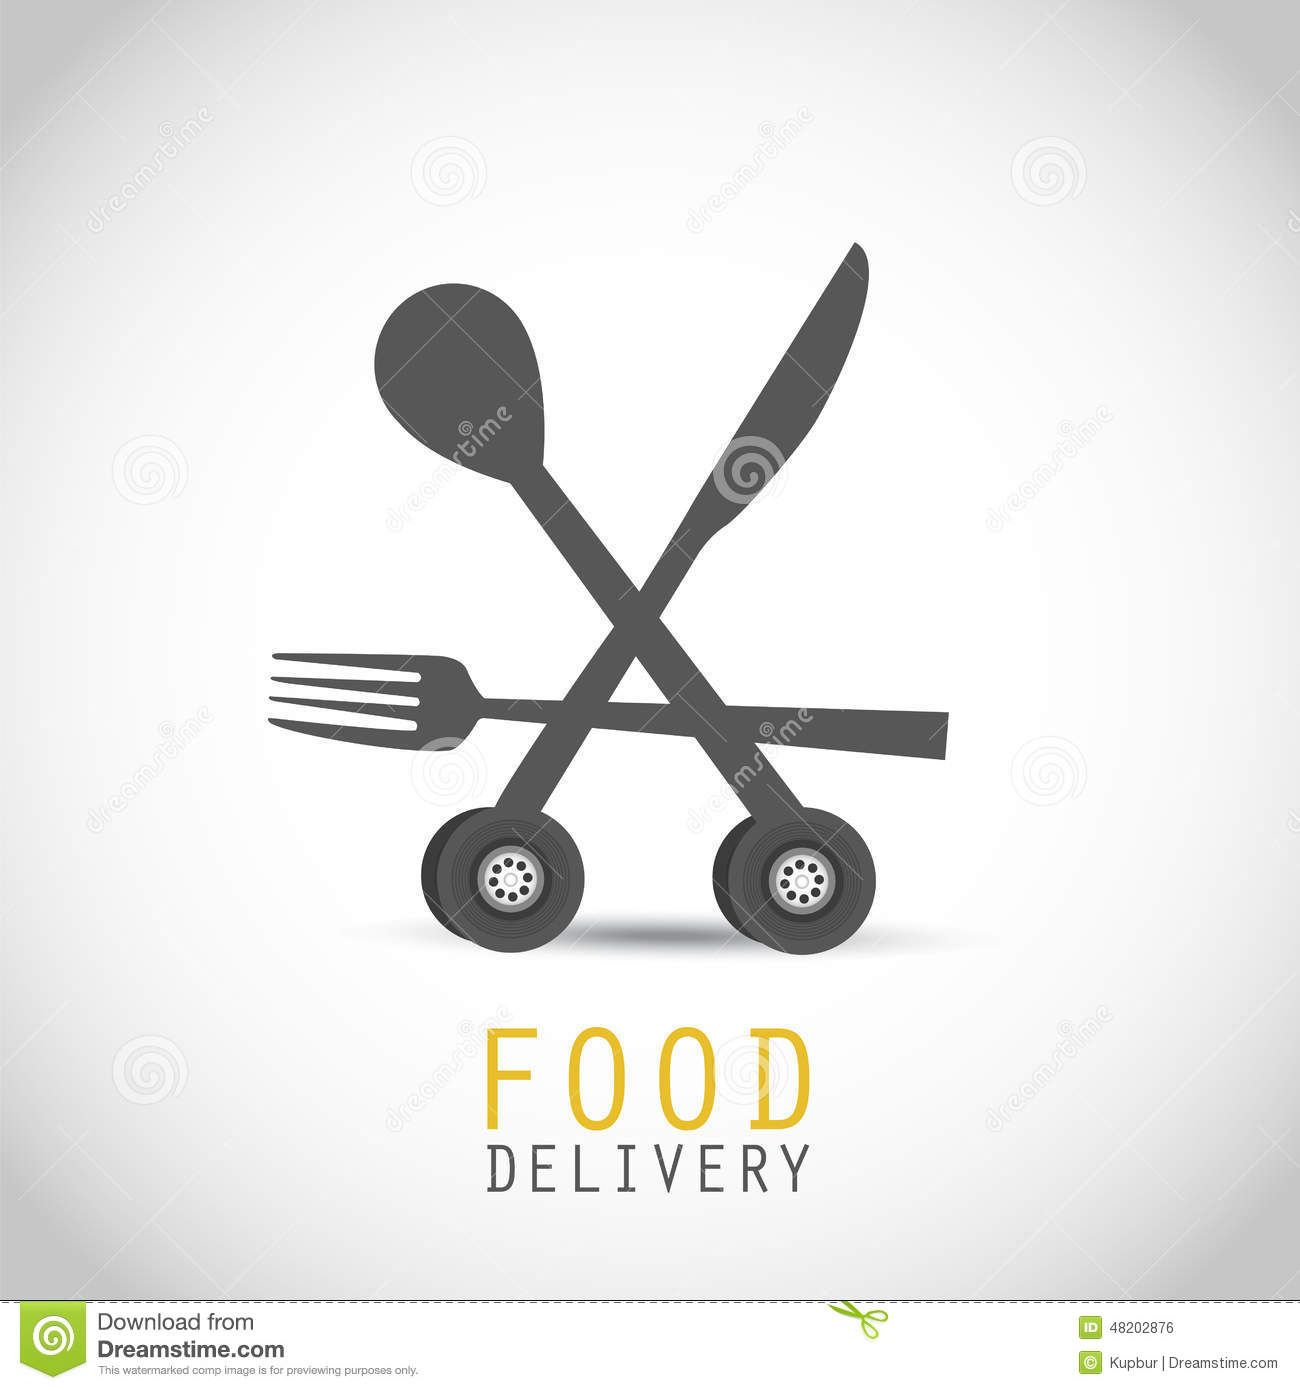 Food Delivery Design Download From Over 58 Million High Quality Stock Photos Images Vectors Sign Up For Free To Food Delivery Food Delivery Logo Logo Food